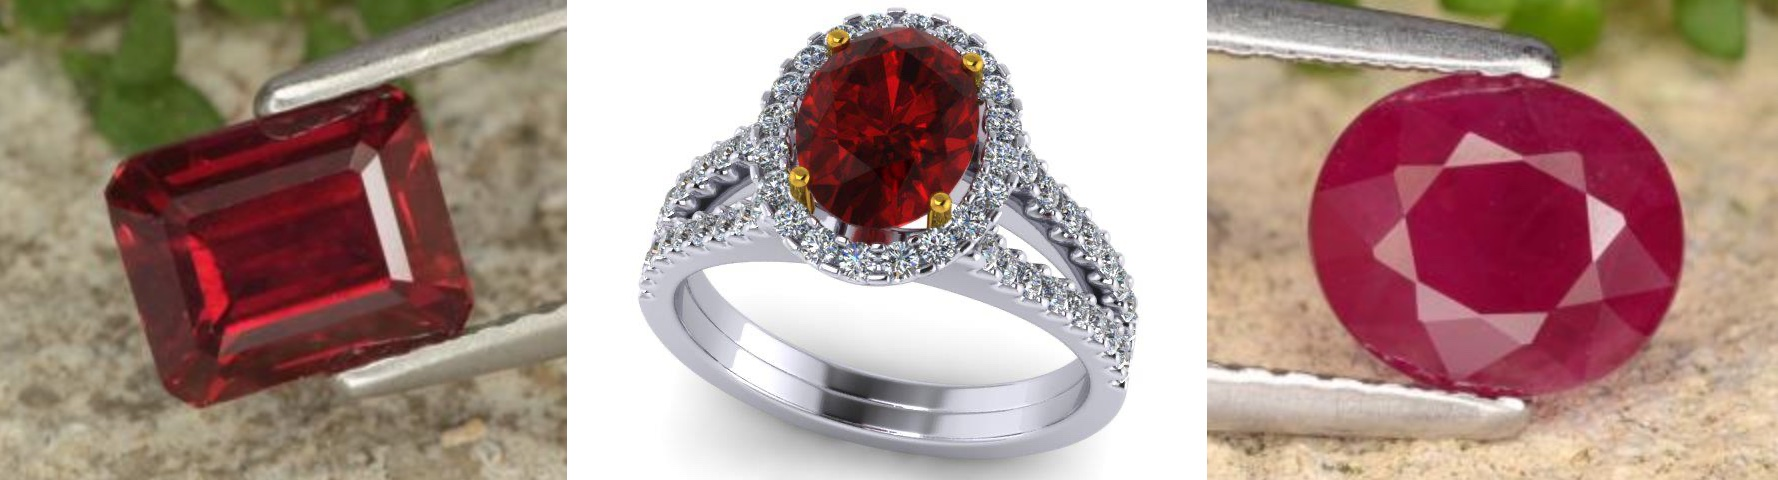 Left image: 1.68ct Step Cut Ruby, Origin: Mozambique, Clarity: VS - SI, Treatment: Heated, Source: https://www.gemselect.com/ Middle image: Ruby and diamond ring Right image: 1.37ct Oval Cut Ruby, Origin: Myanmar, Clarity: VS - SI, Treatment: Heated, Source: https://www.gemselect.com/